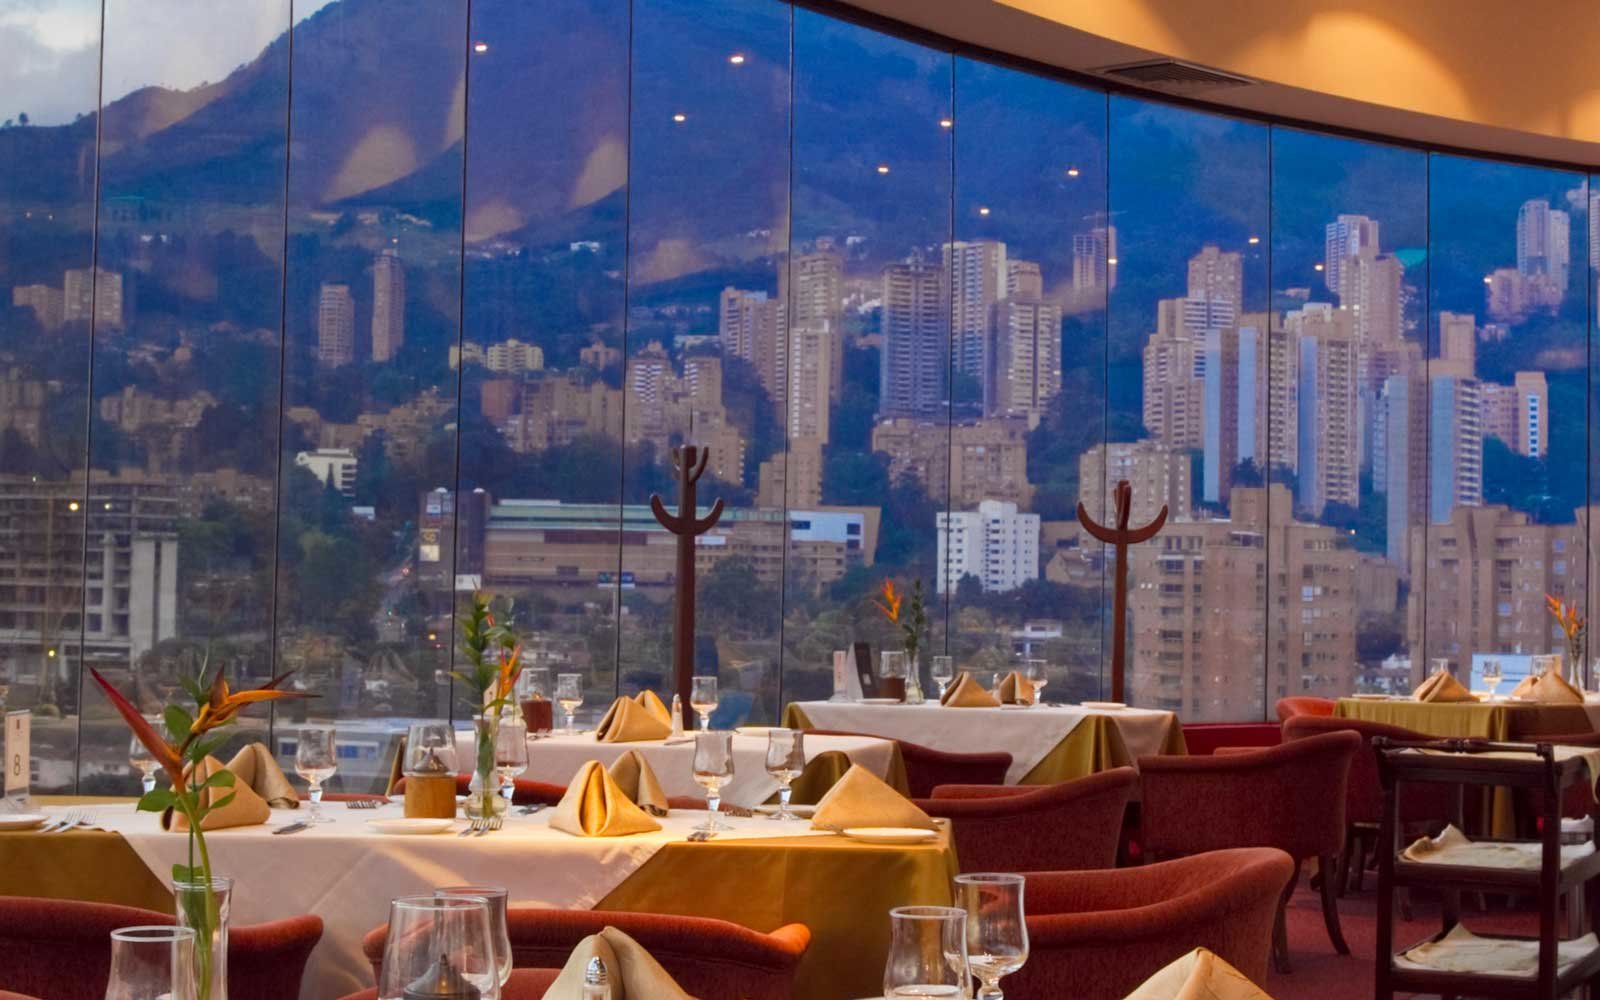 View from the restaurant at the Dann Carlton Hotel Medellin, Colombia